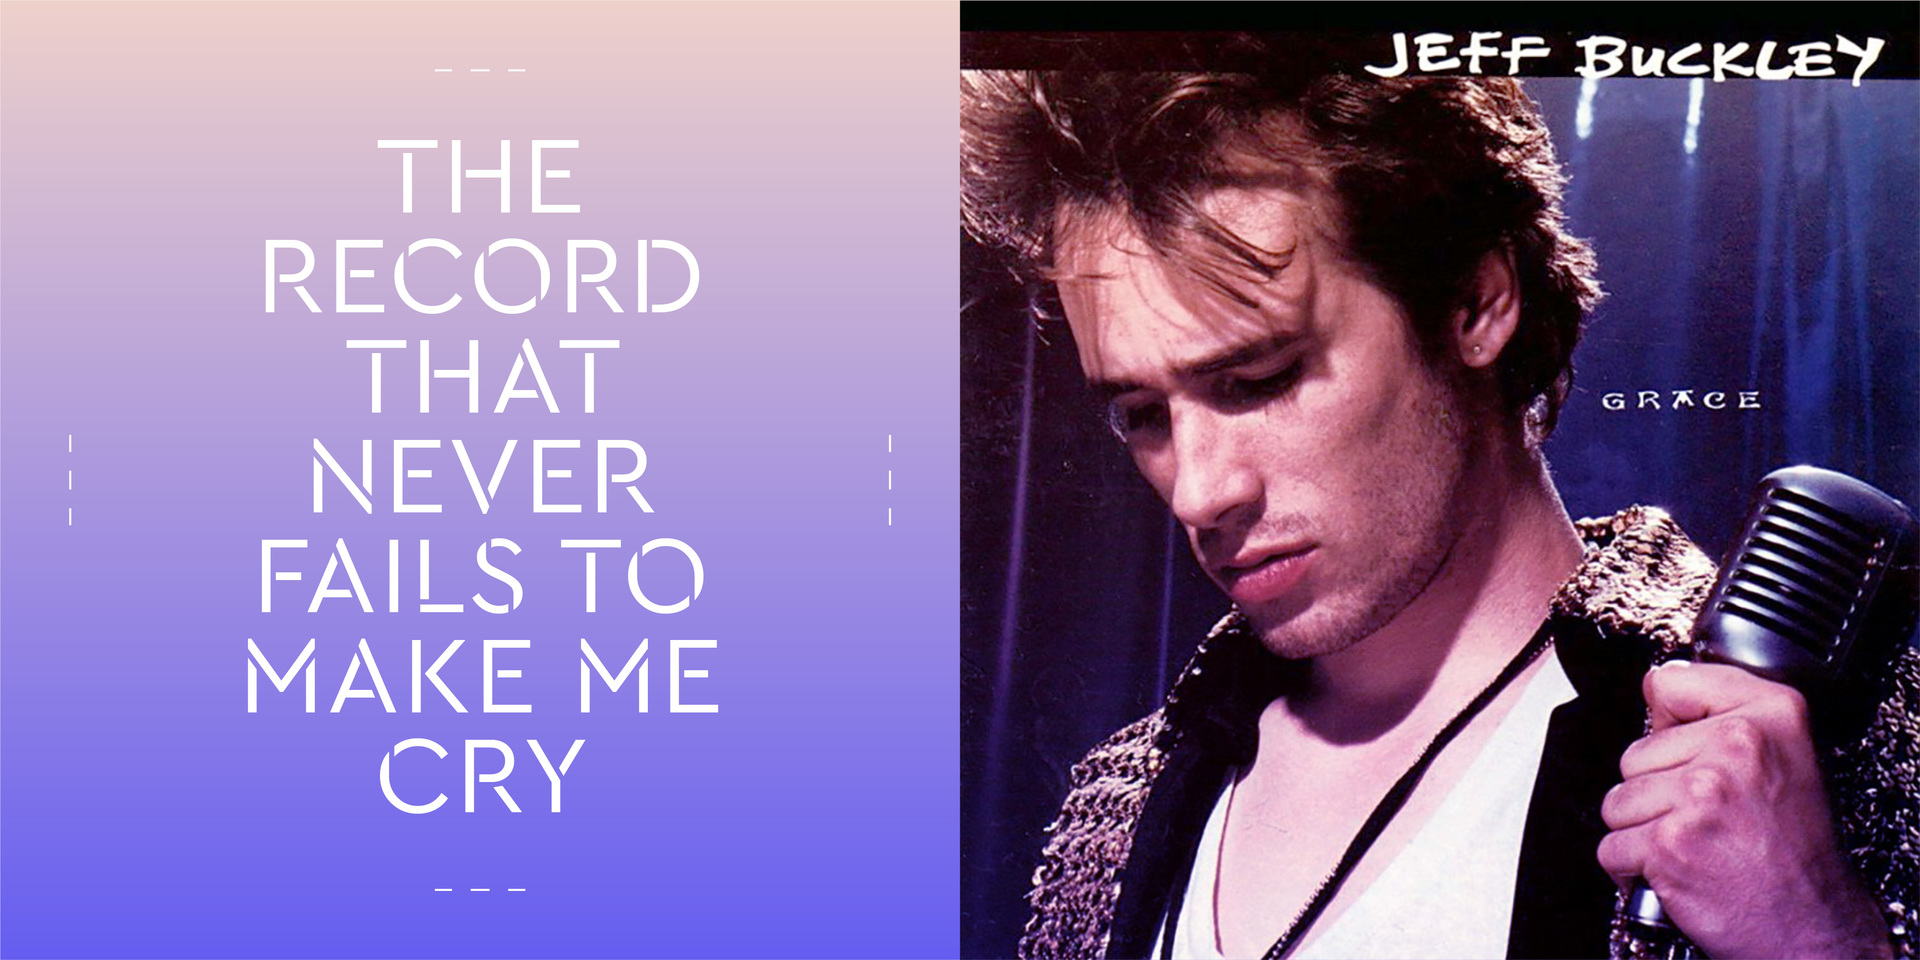 Lover you should've of come over Jeff Buckley grace